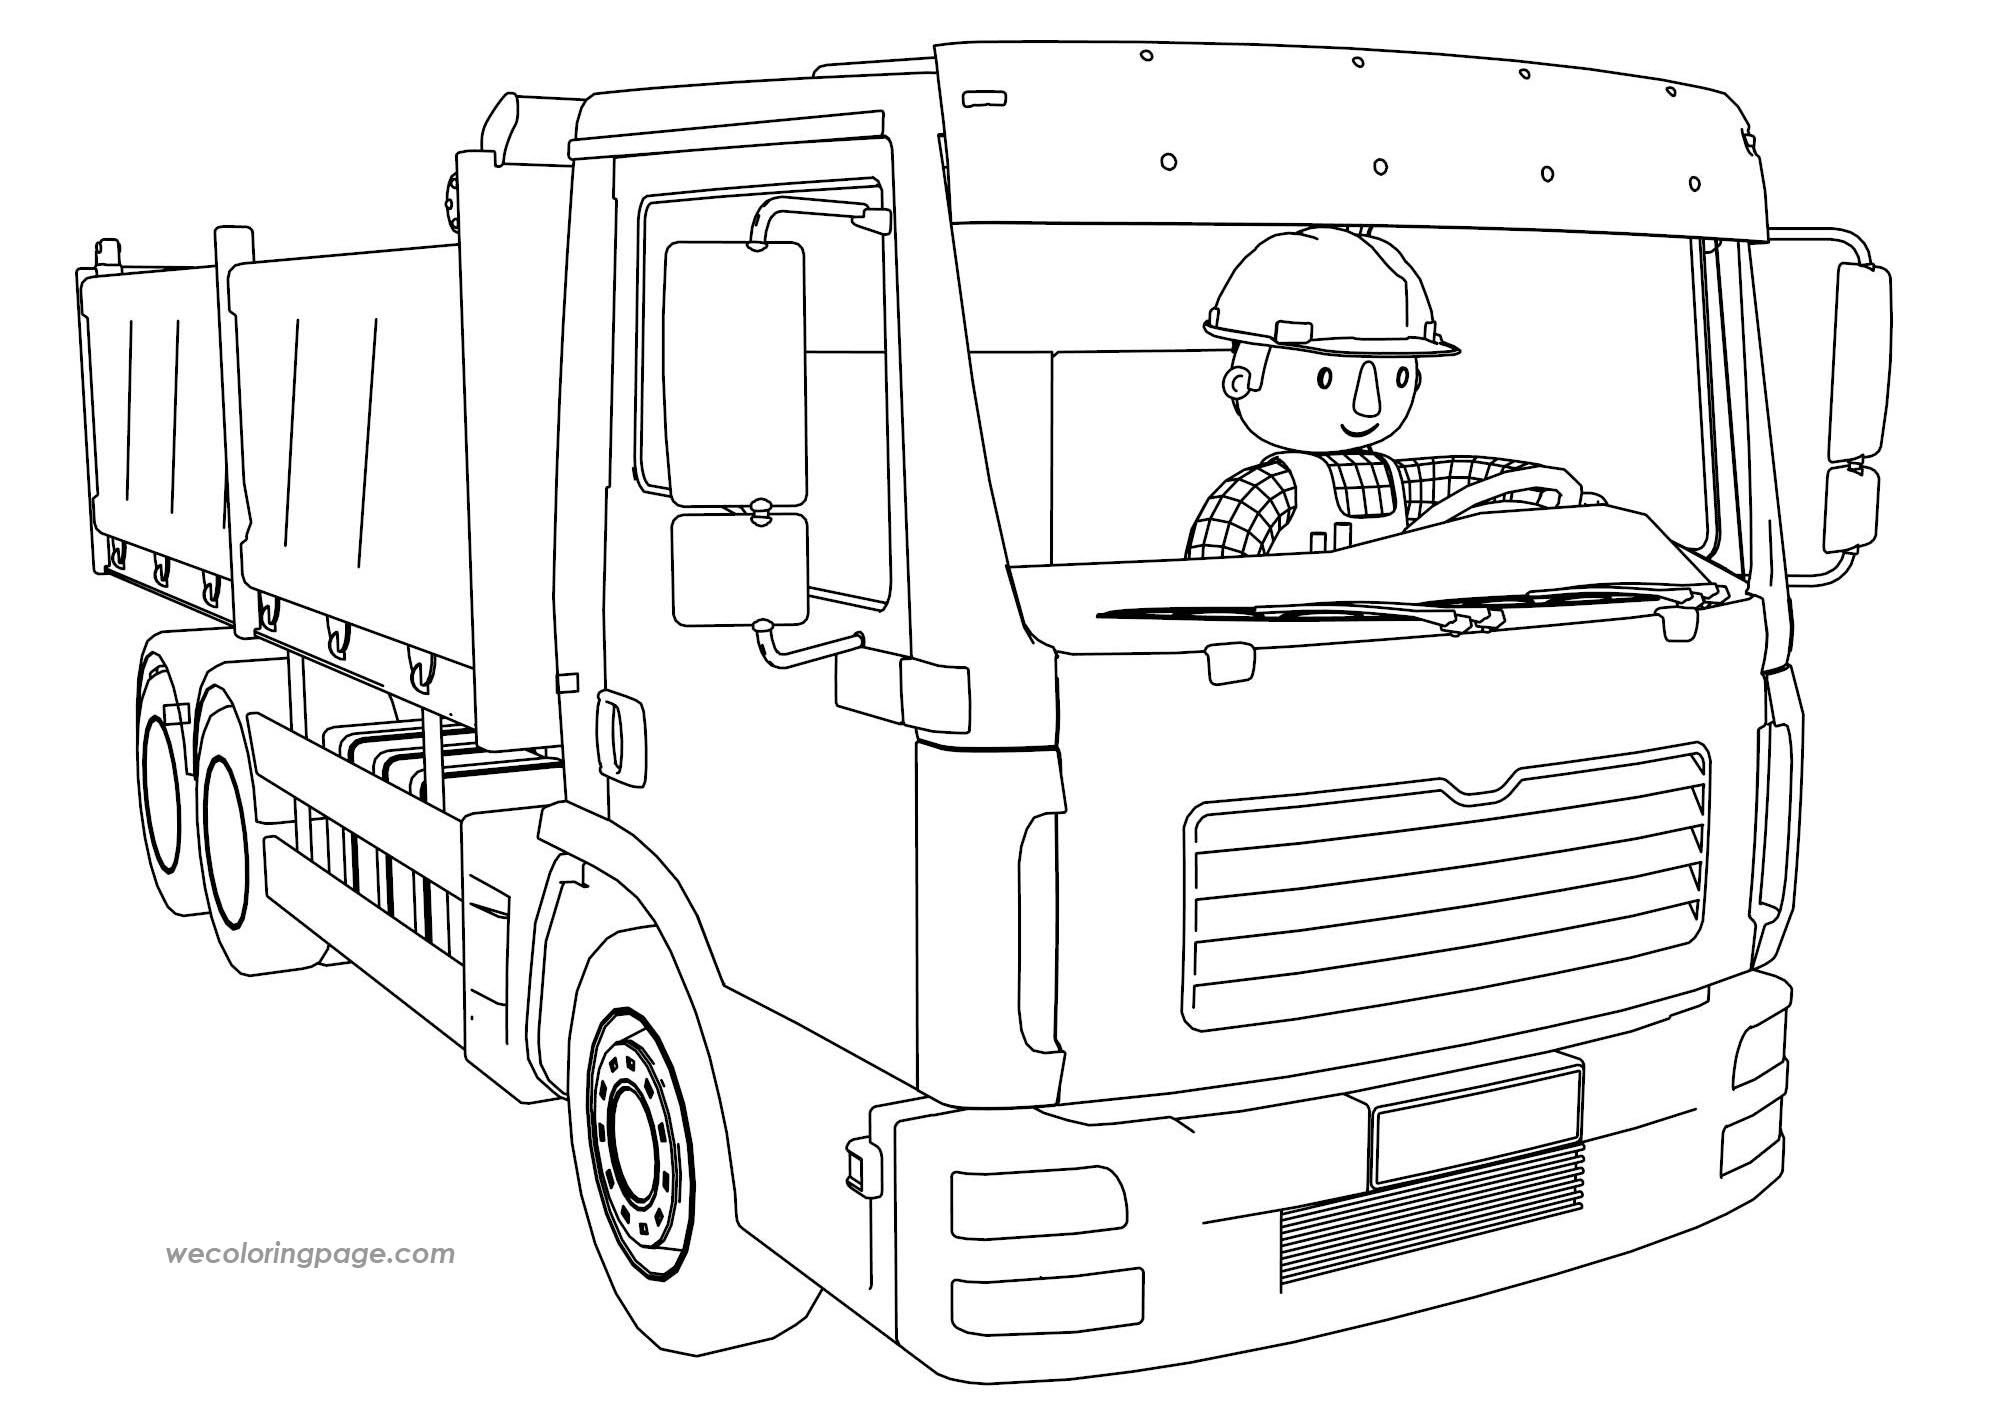 Bob-The-Builder-Driving-Truck-Coloring-Page | Pinterest | Bobs